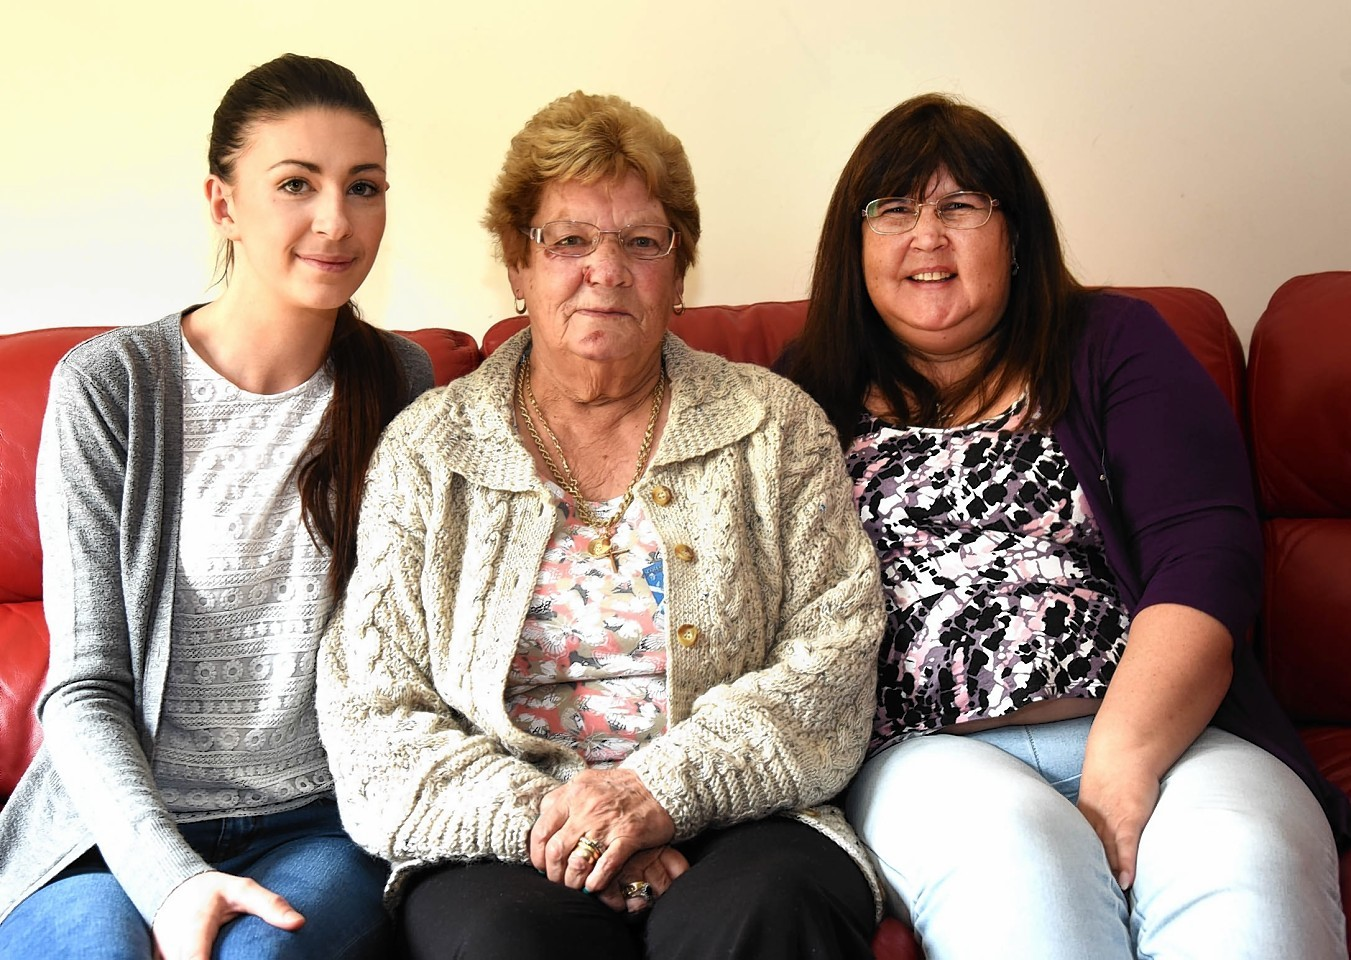 Shona Cameron (21) (left) with Jean Curran (80) and her daughter Linda Curran (52).